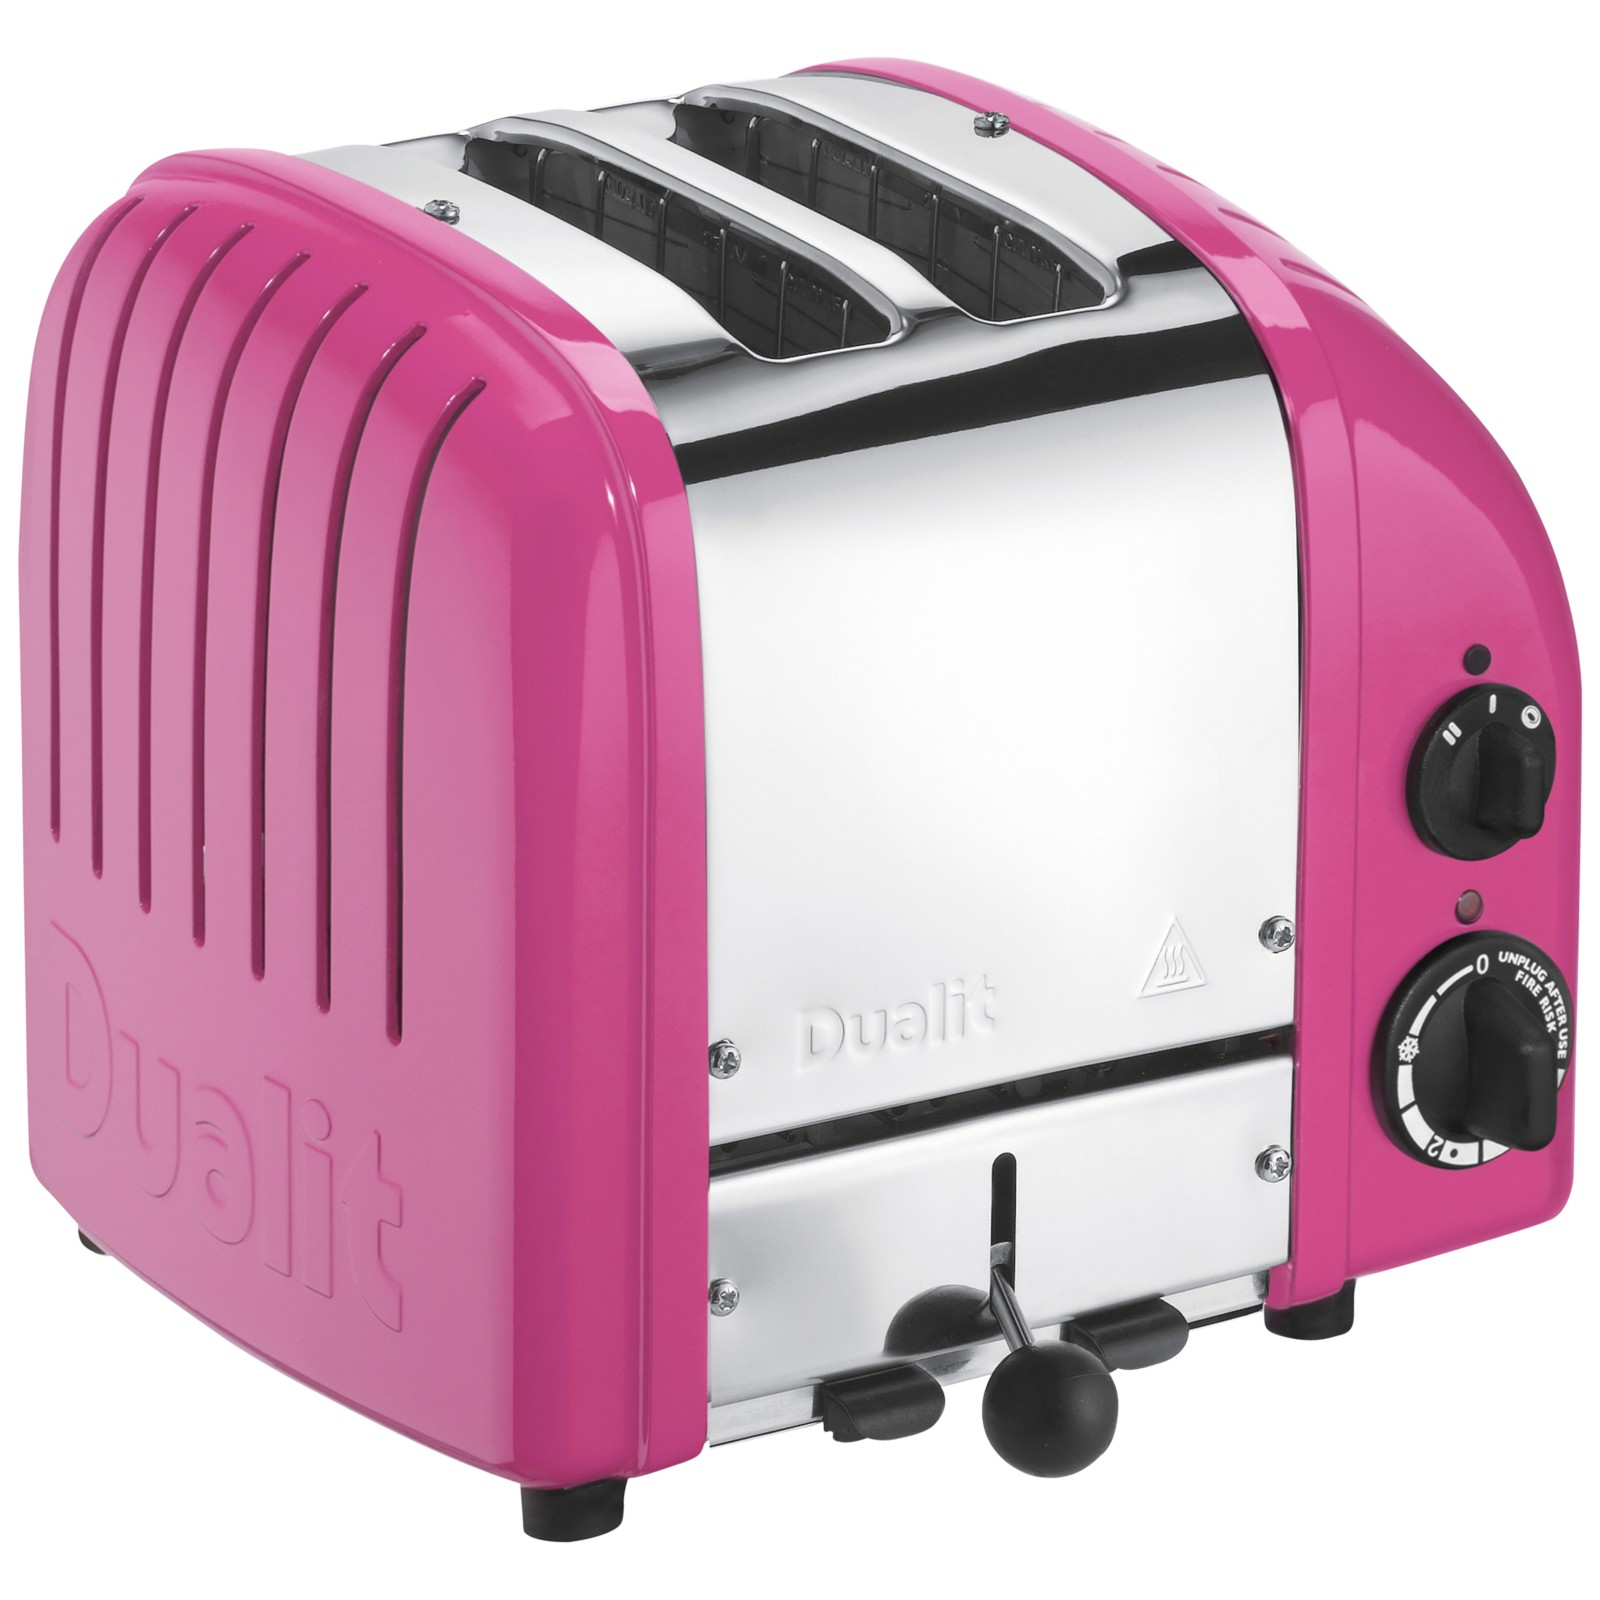 Dualit Made to Order Classic 2-Slice Toaster Stainless Steel/Heather Violet Gloss